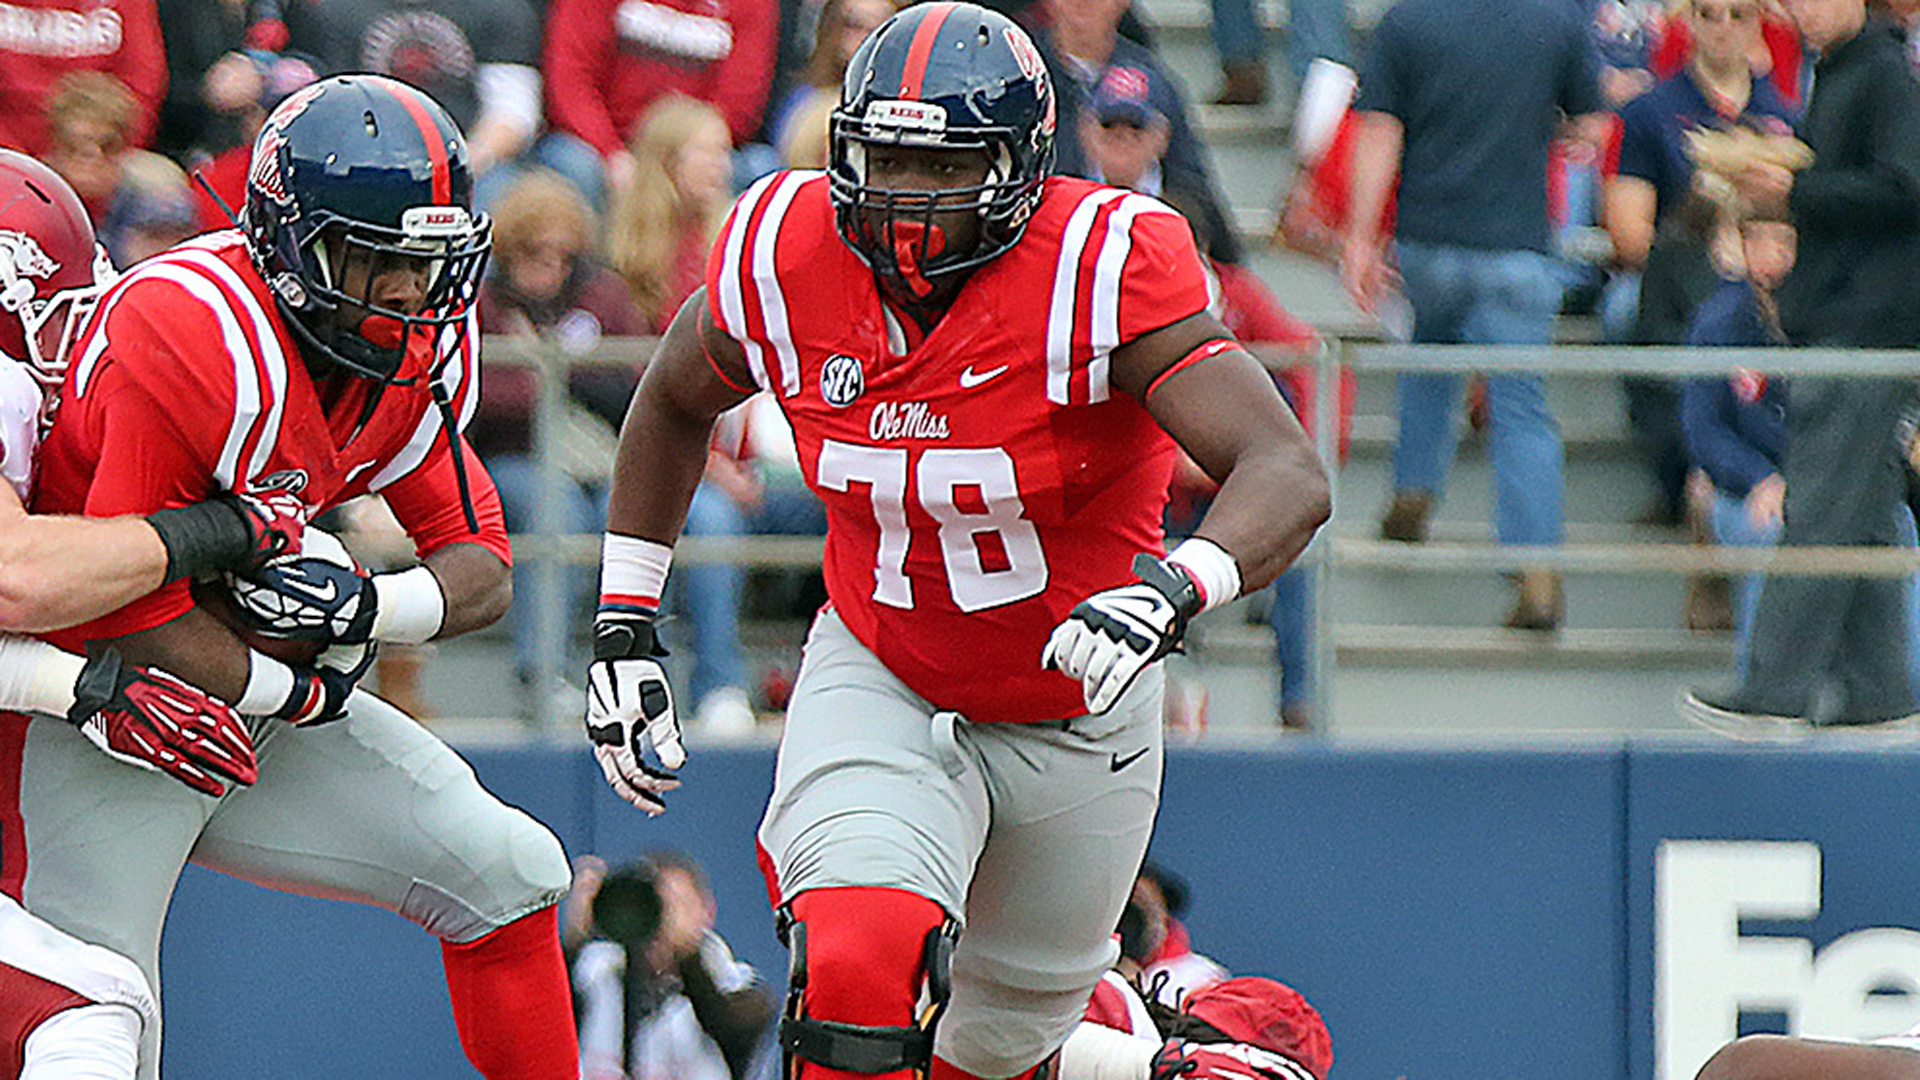 Ole Miss tackle Laremy Tunsil out again amid NCAA investigation